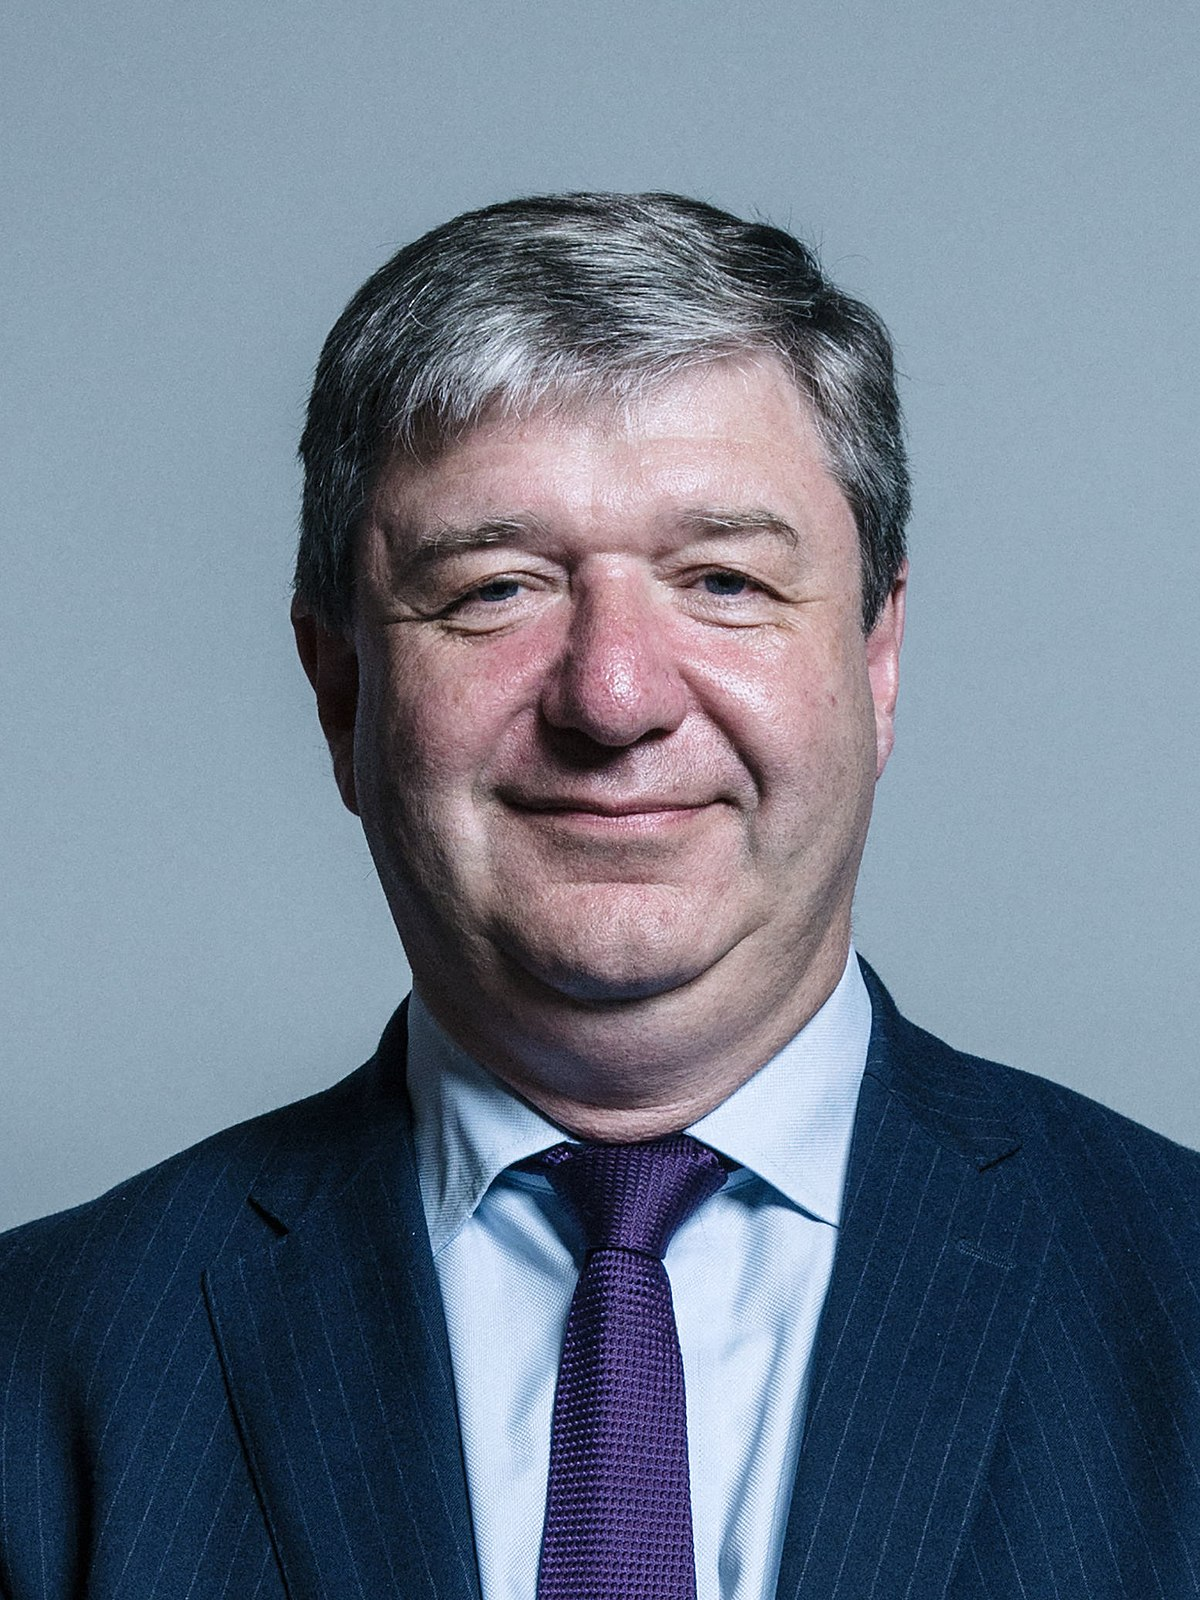 Alistair Carmichael - Wikipedia